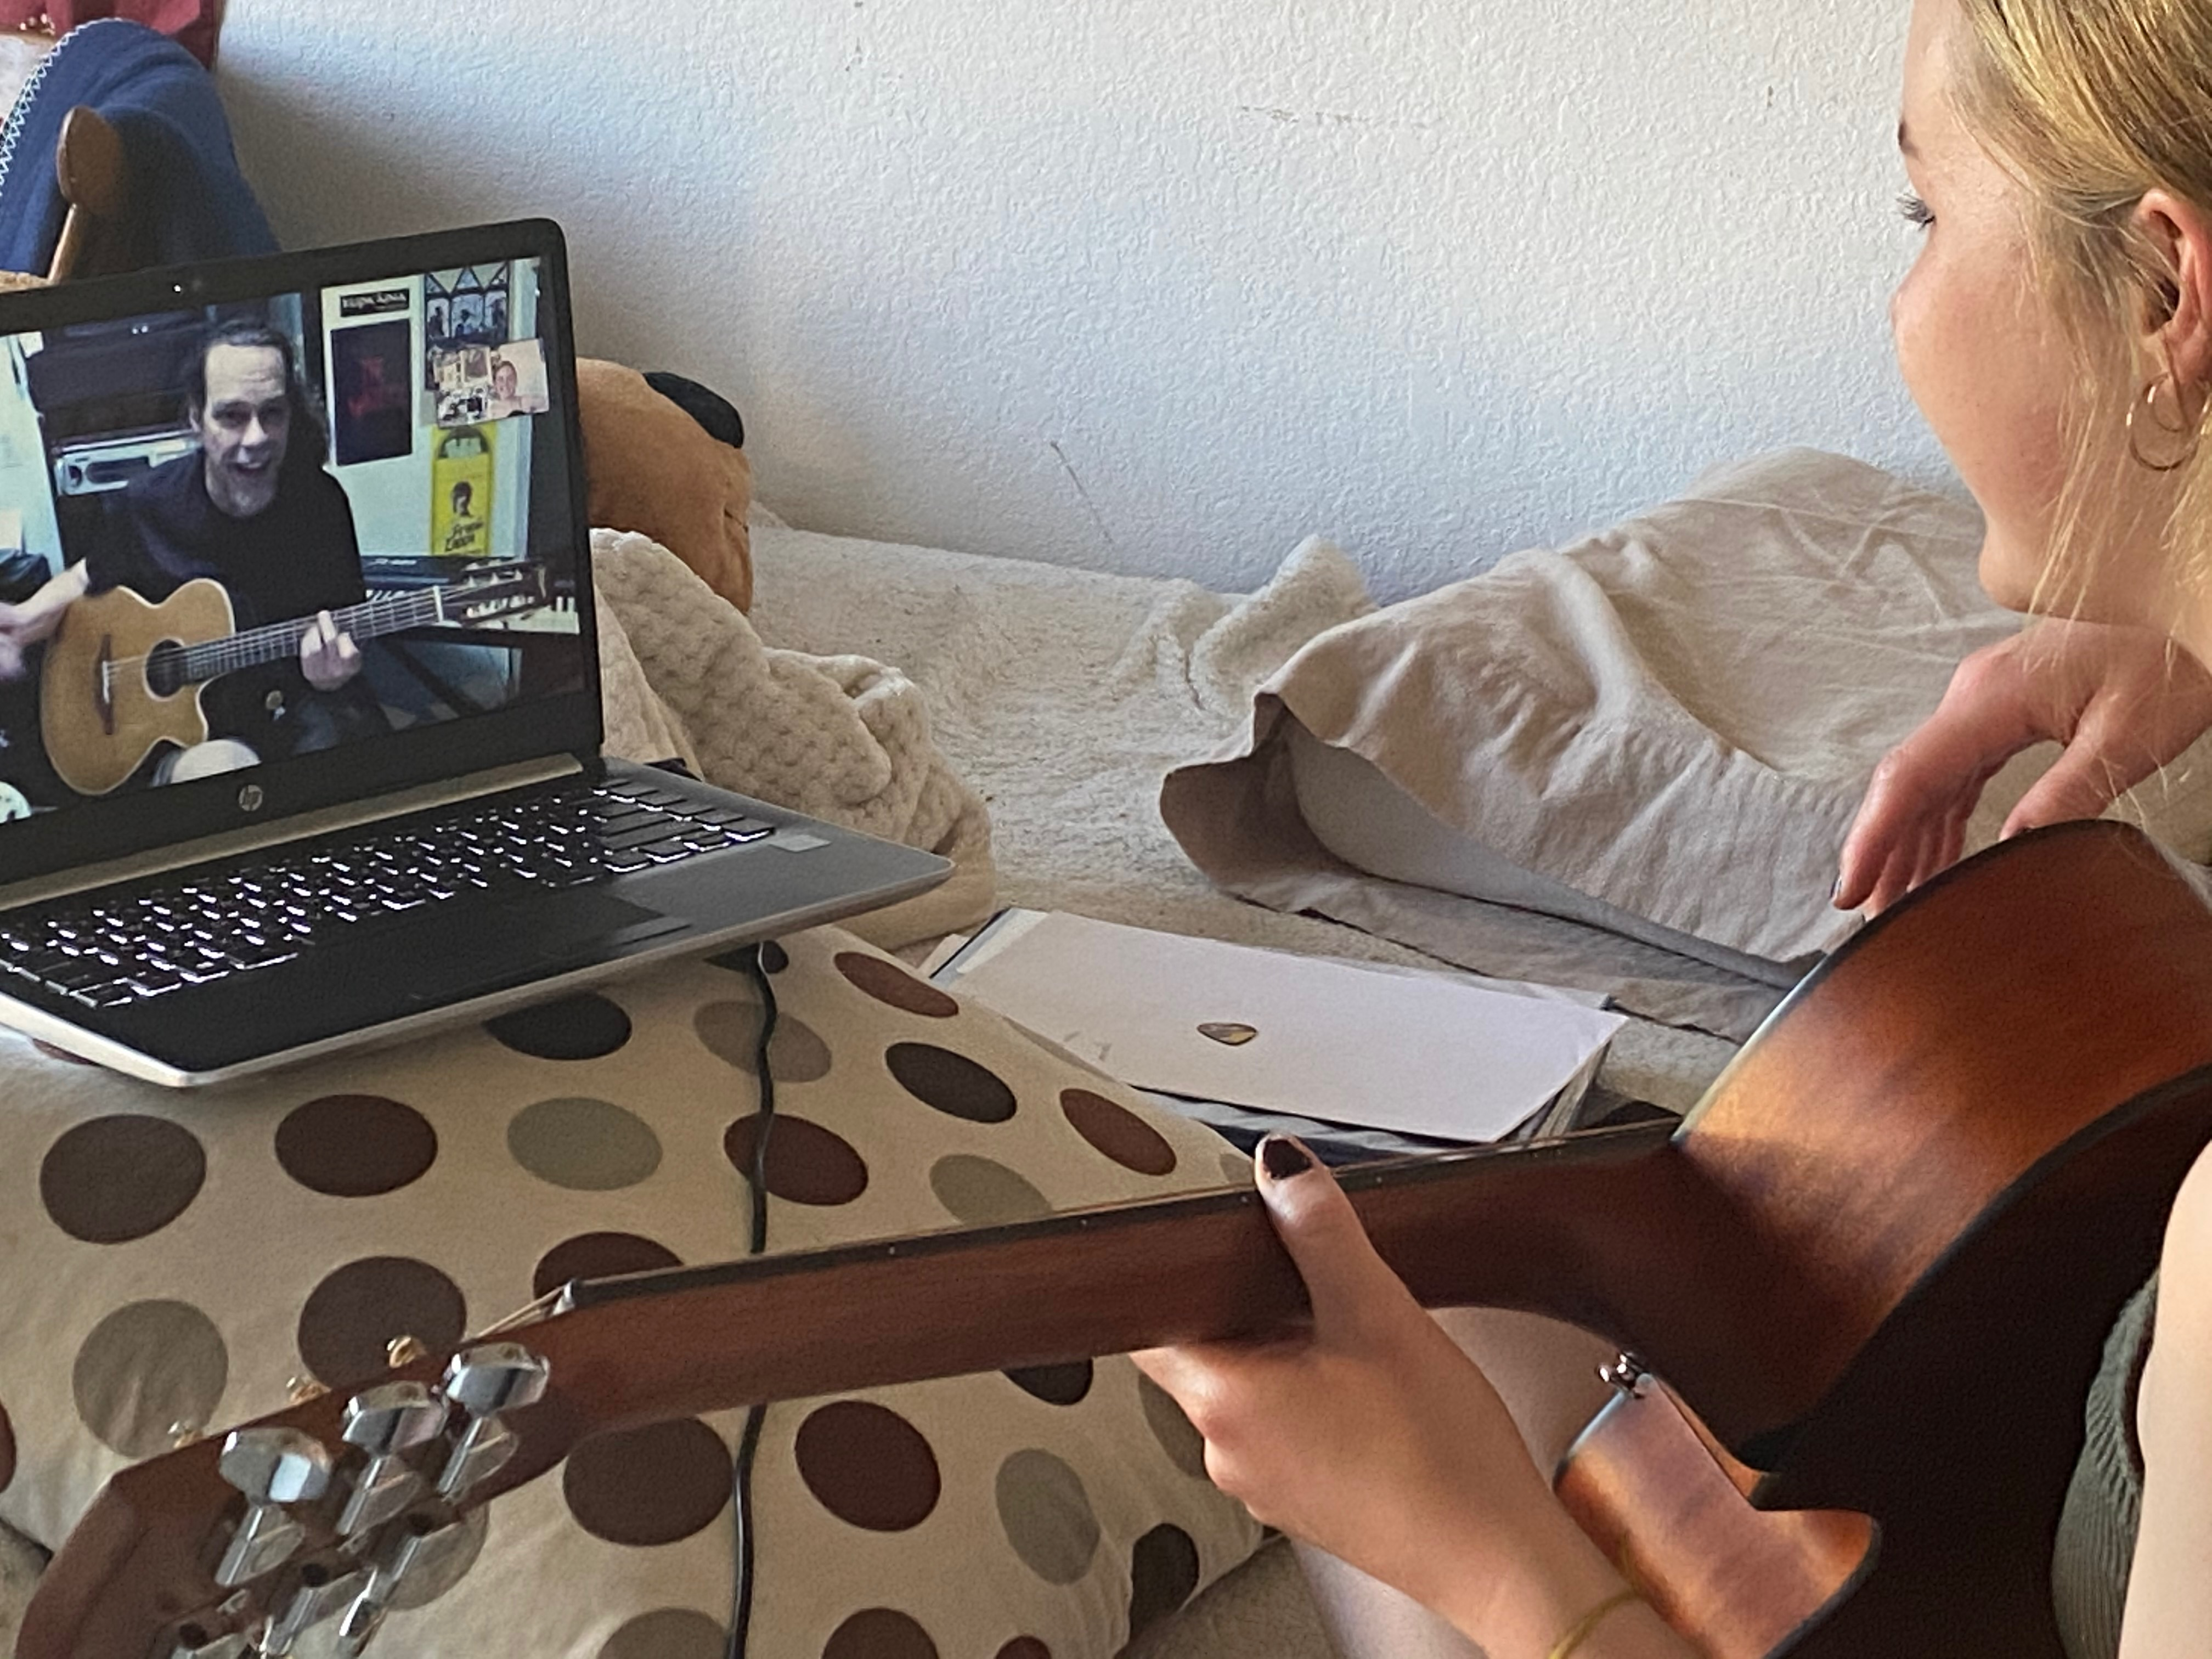 online music lessons for kids and adults near me in castro valley ca